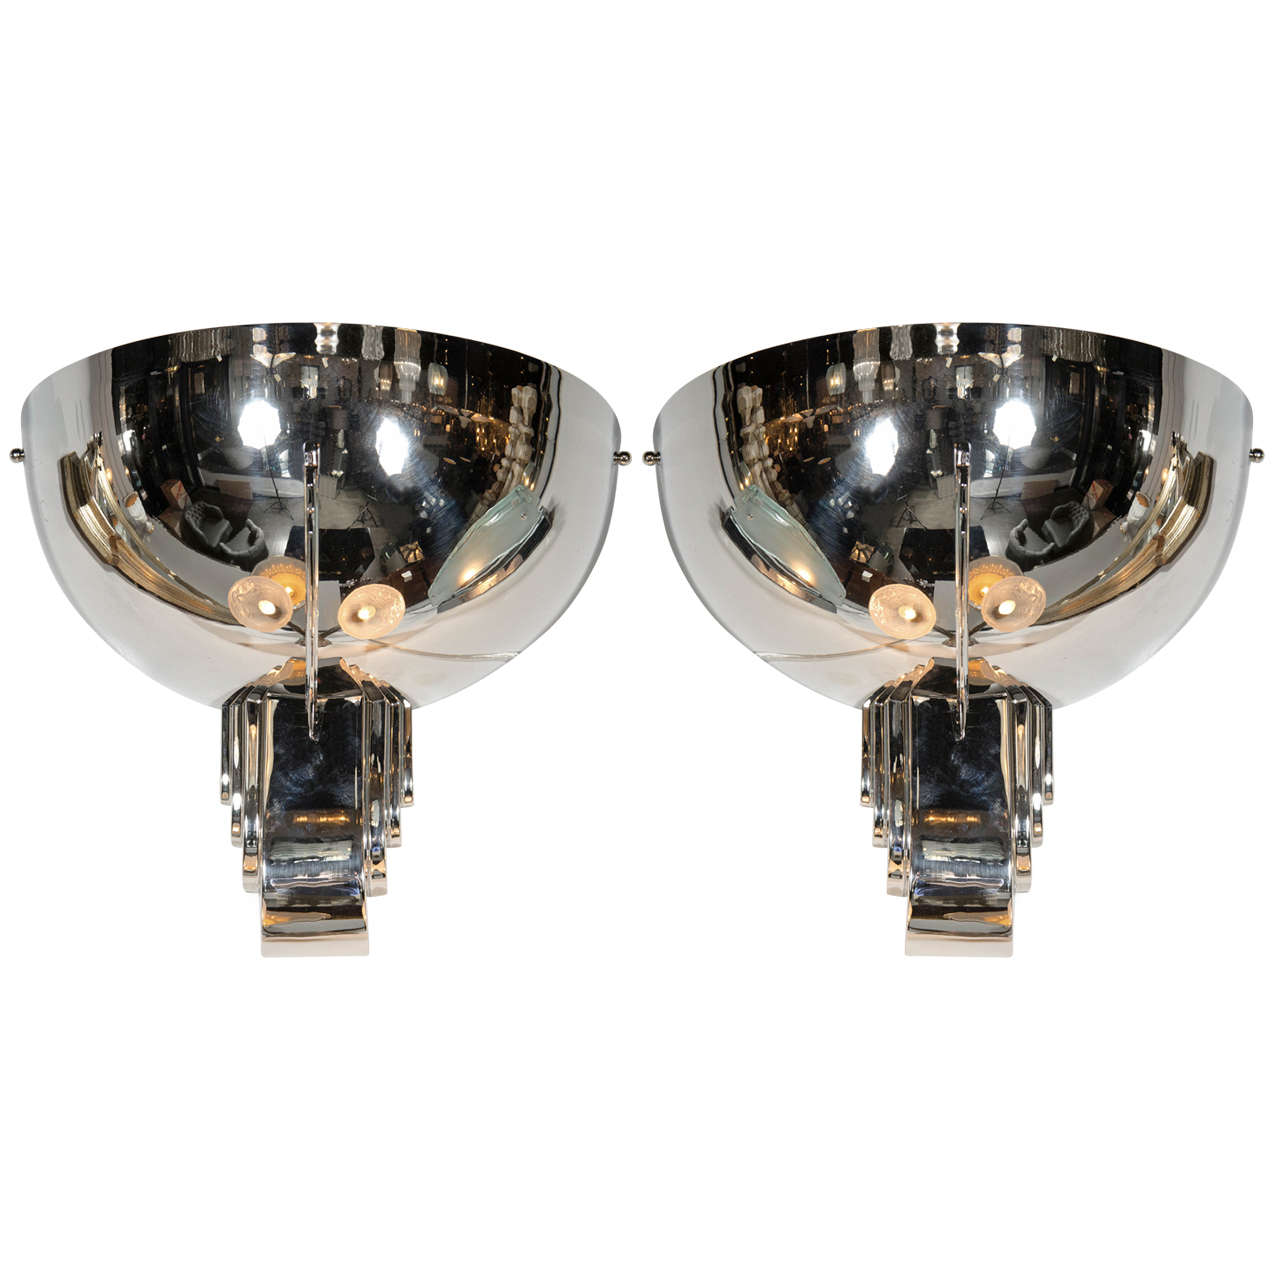 Pair of Art Deco Skyscraper Style Sconces in the Manner of Jean Perzel For Sale at 1stdibs